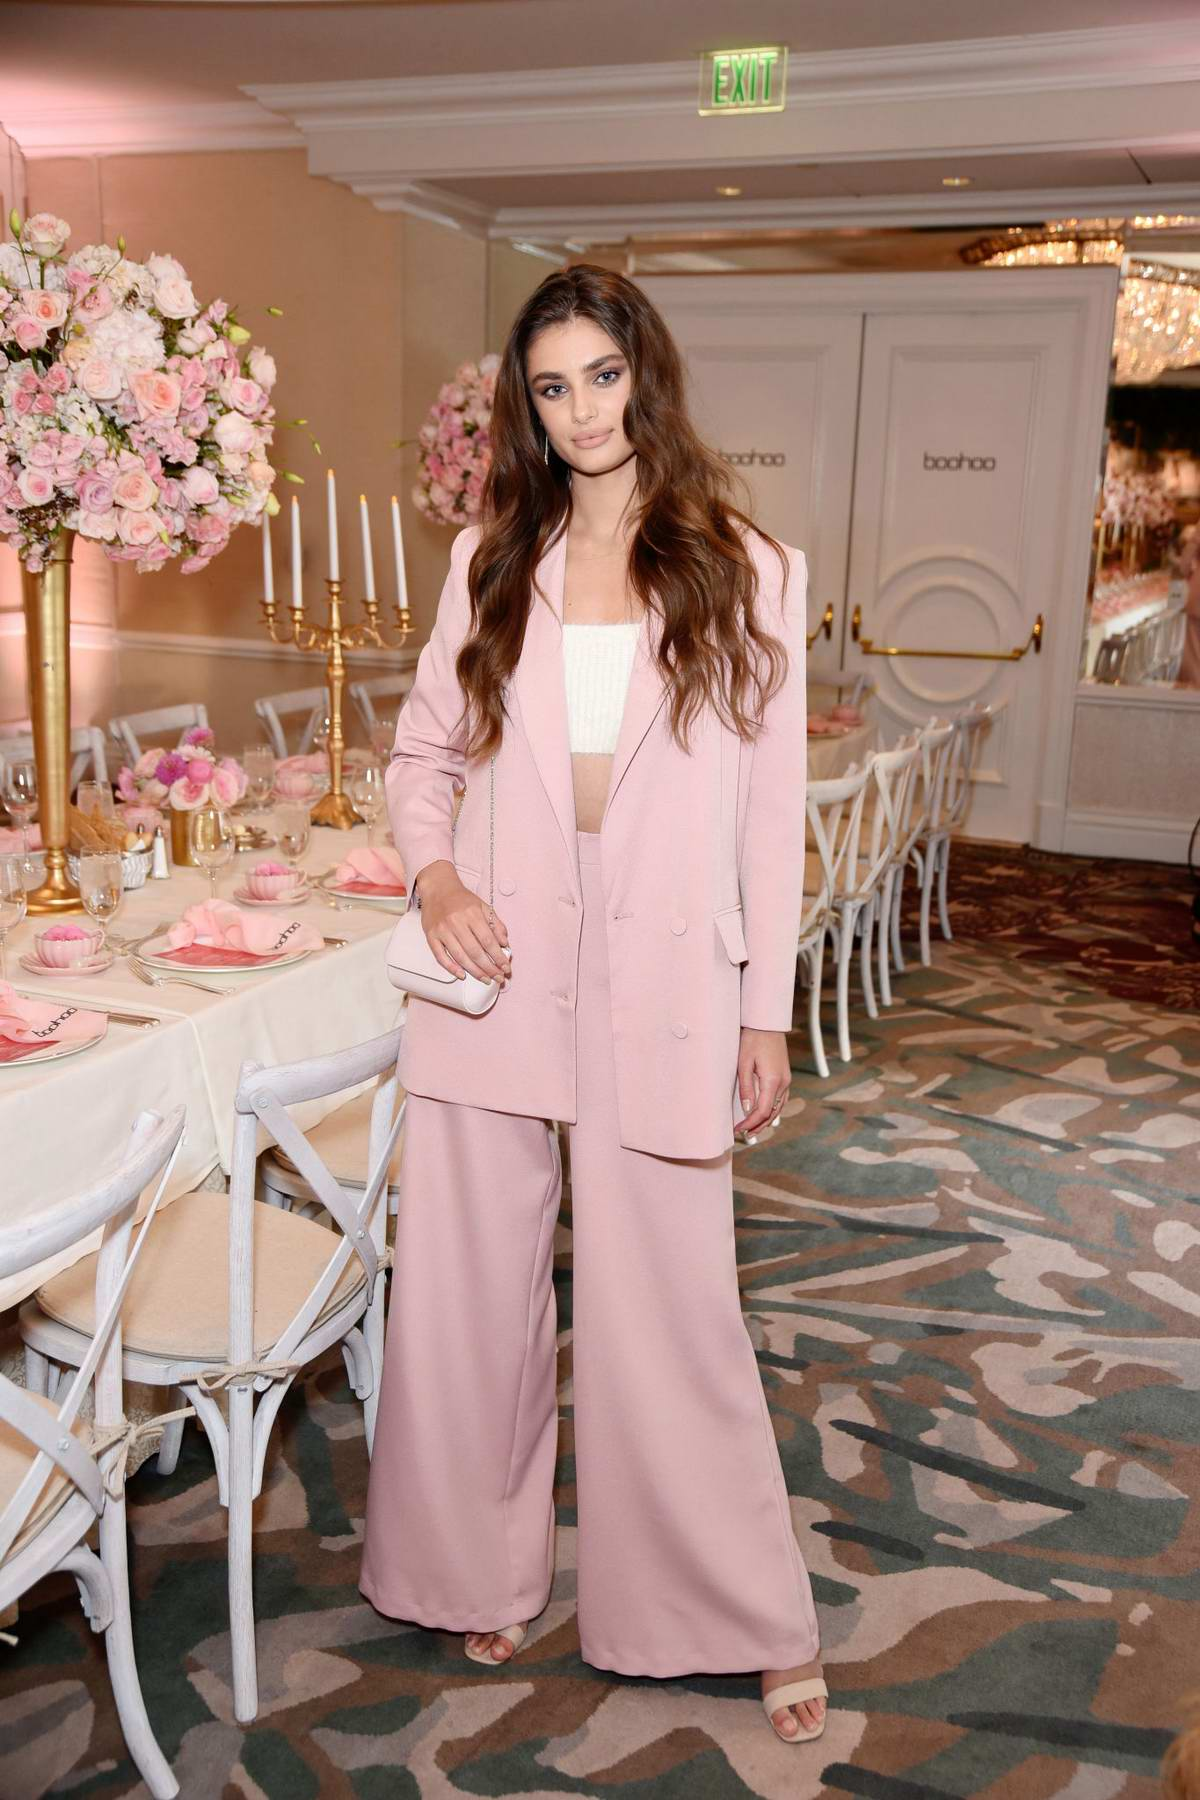 Taylor Hill attends Boohoo x Taylor Hill Tea Party in Malibu, California